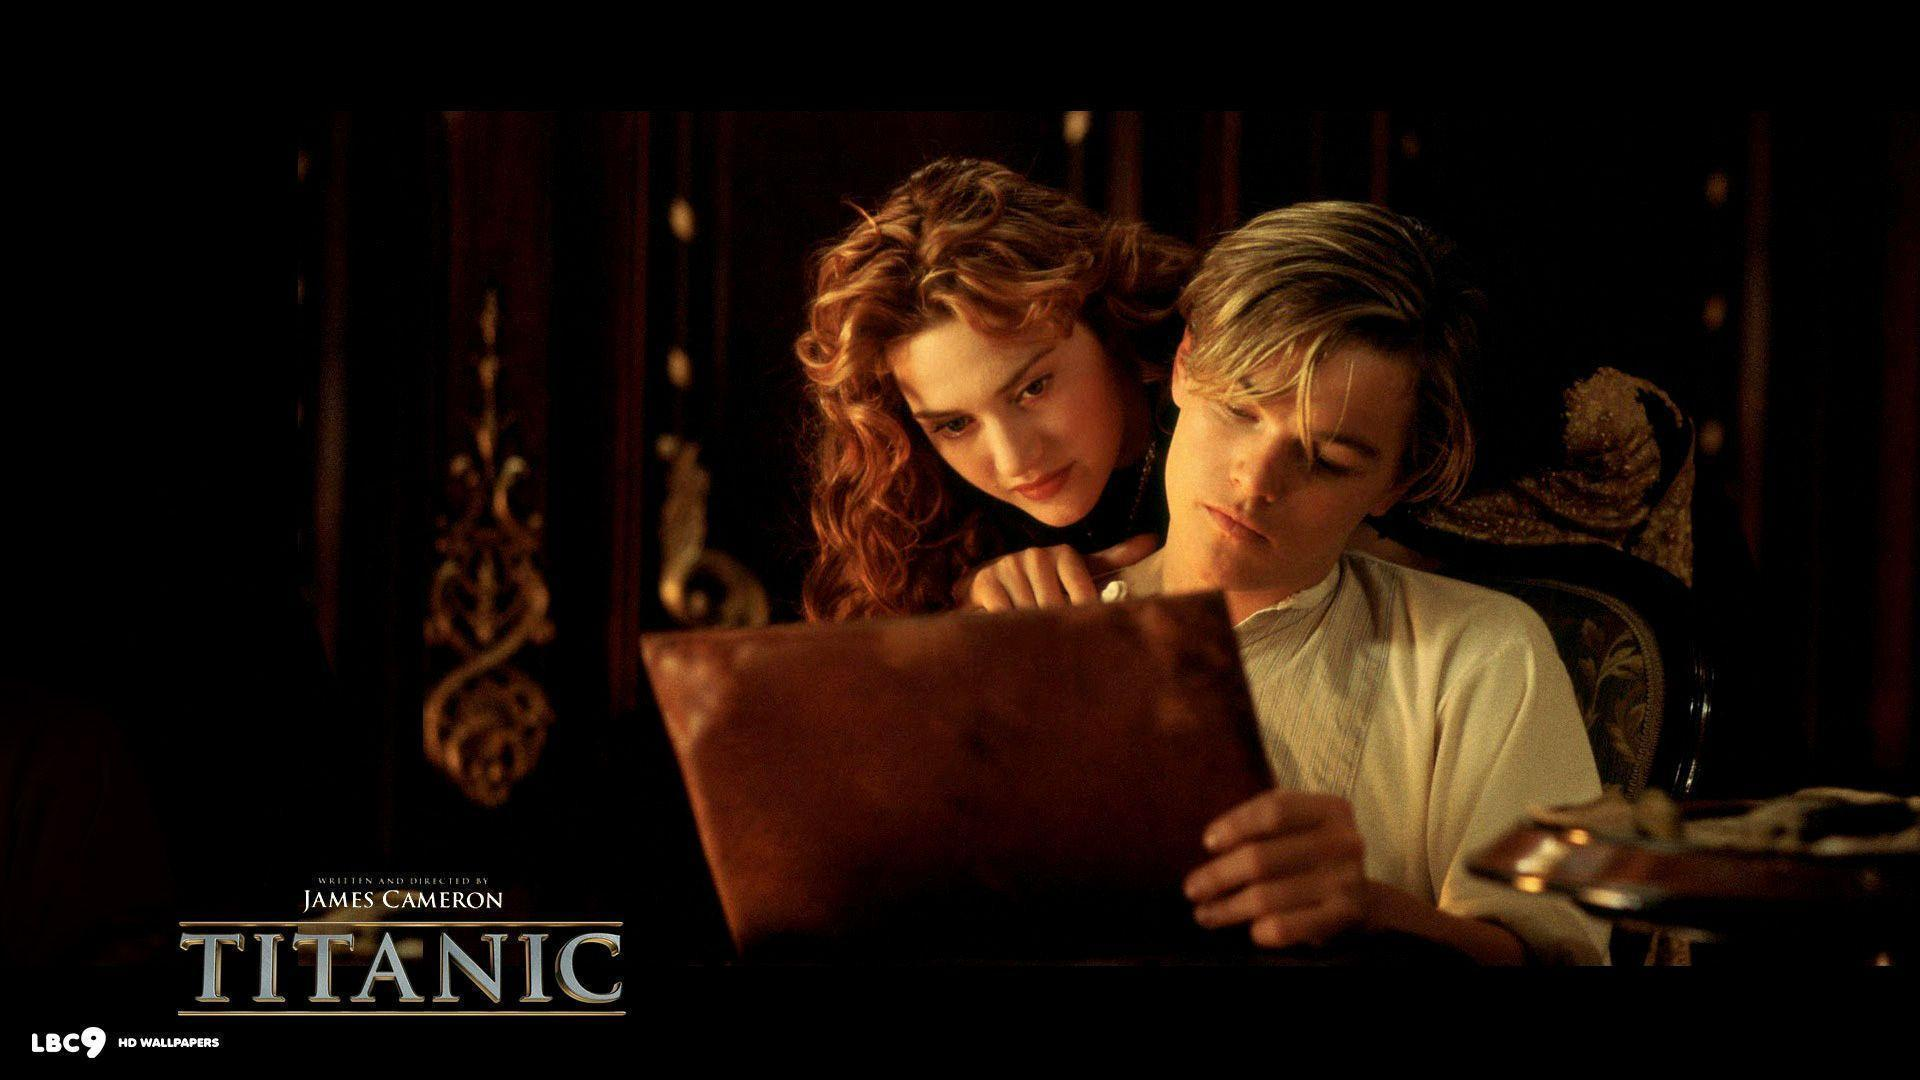 titanic wallpapers 2/6